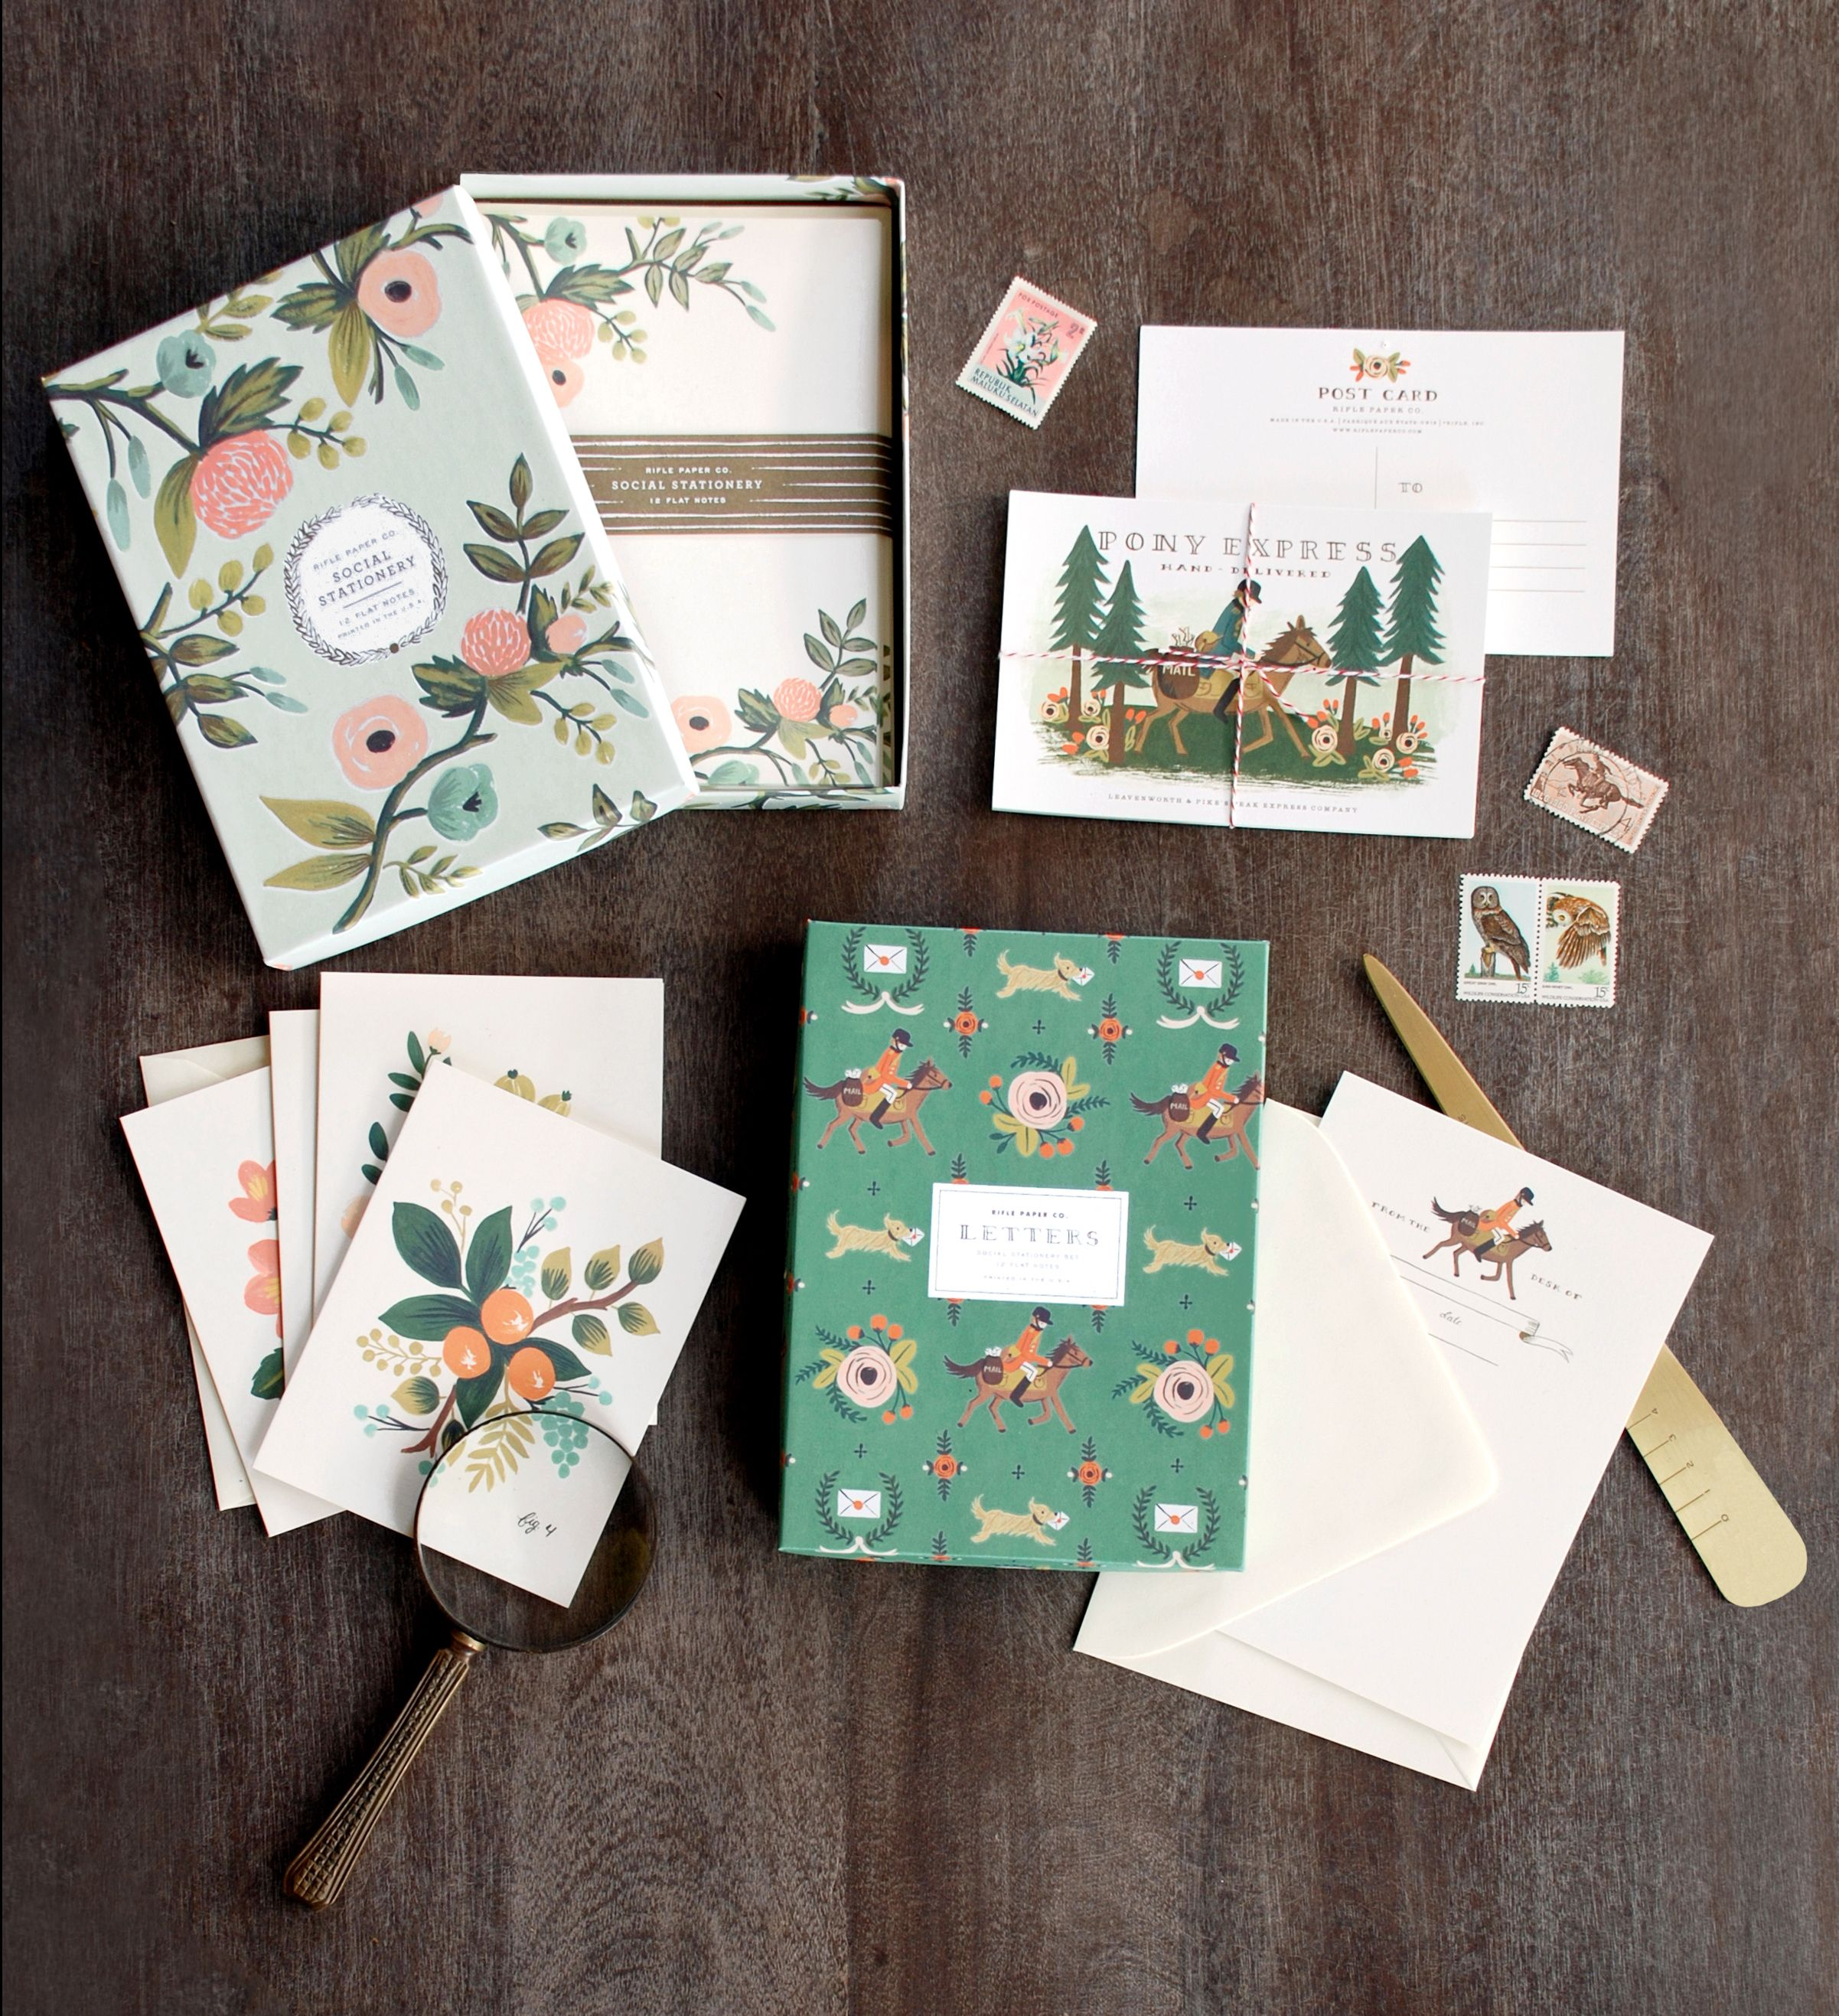 Executive College Stationery Note Cards: More Beautiful Paper To Send Your Loved Ones Some Love